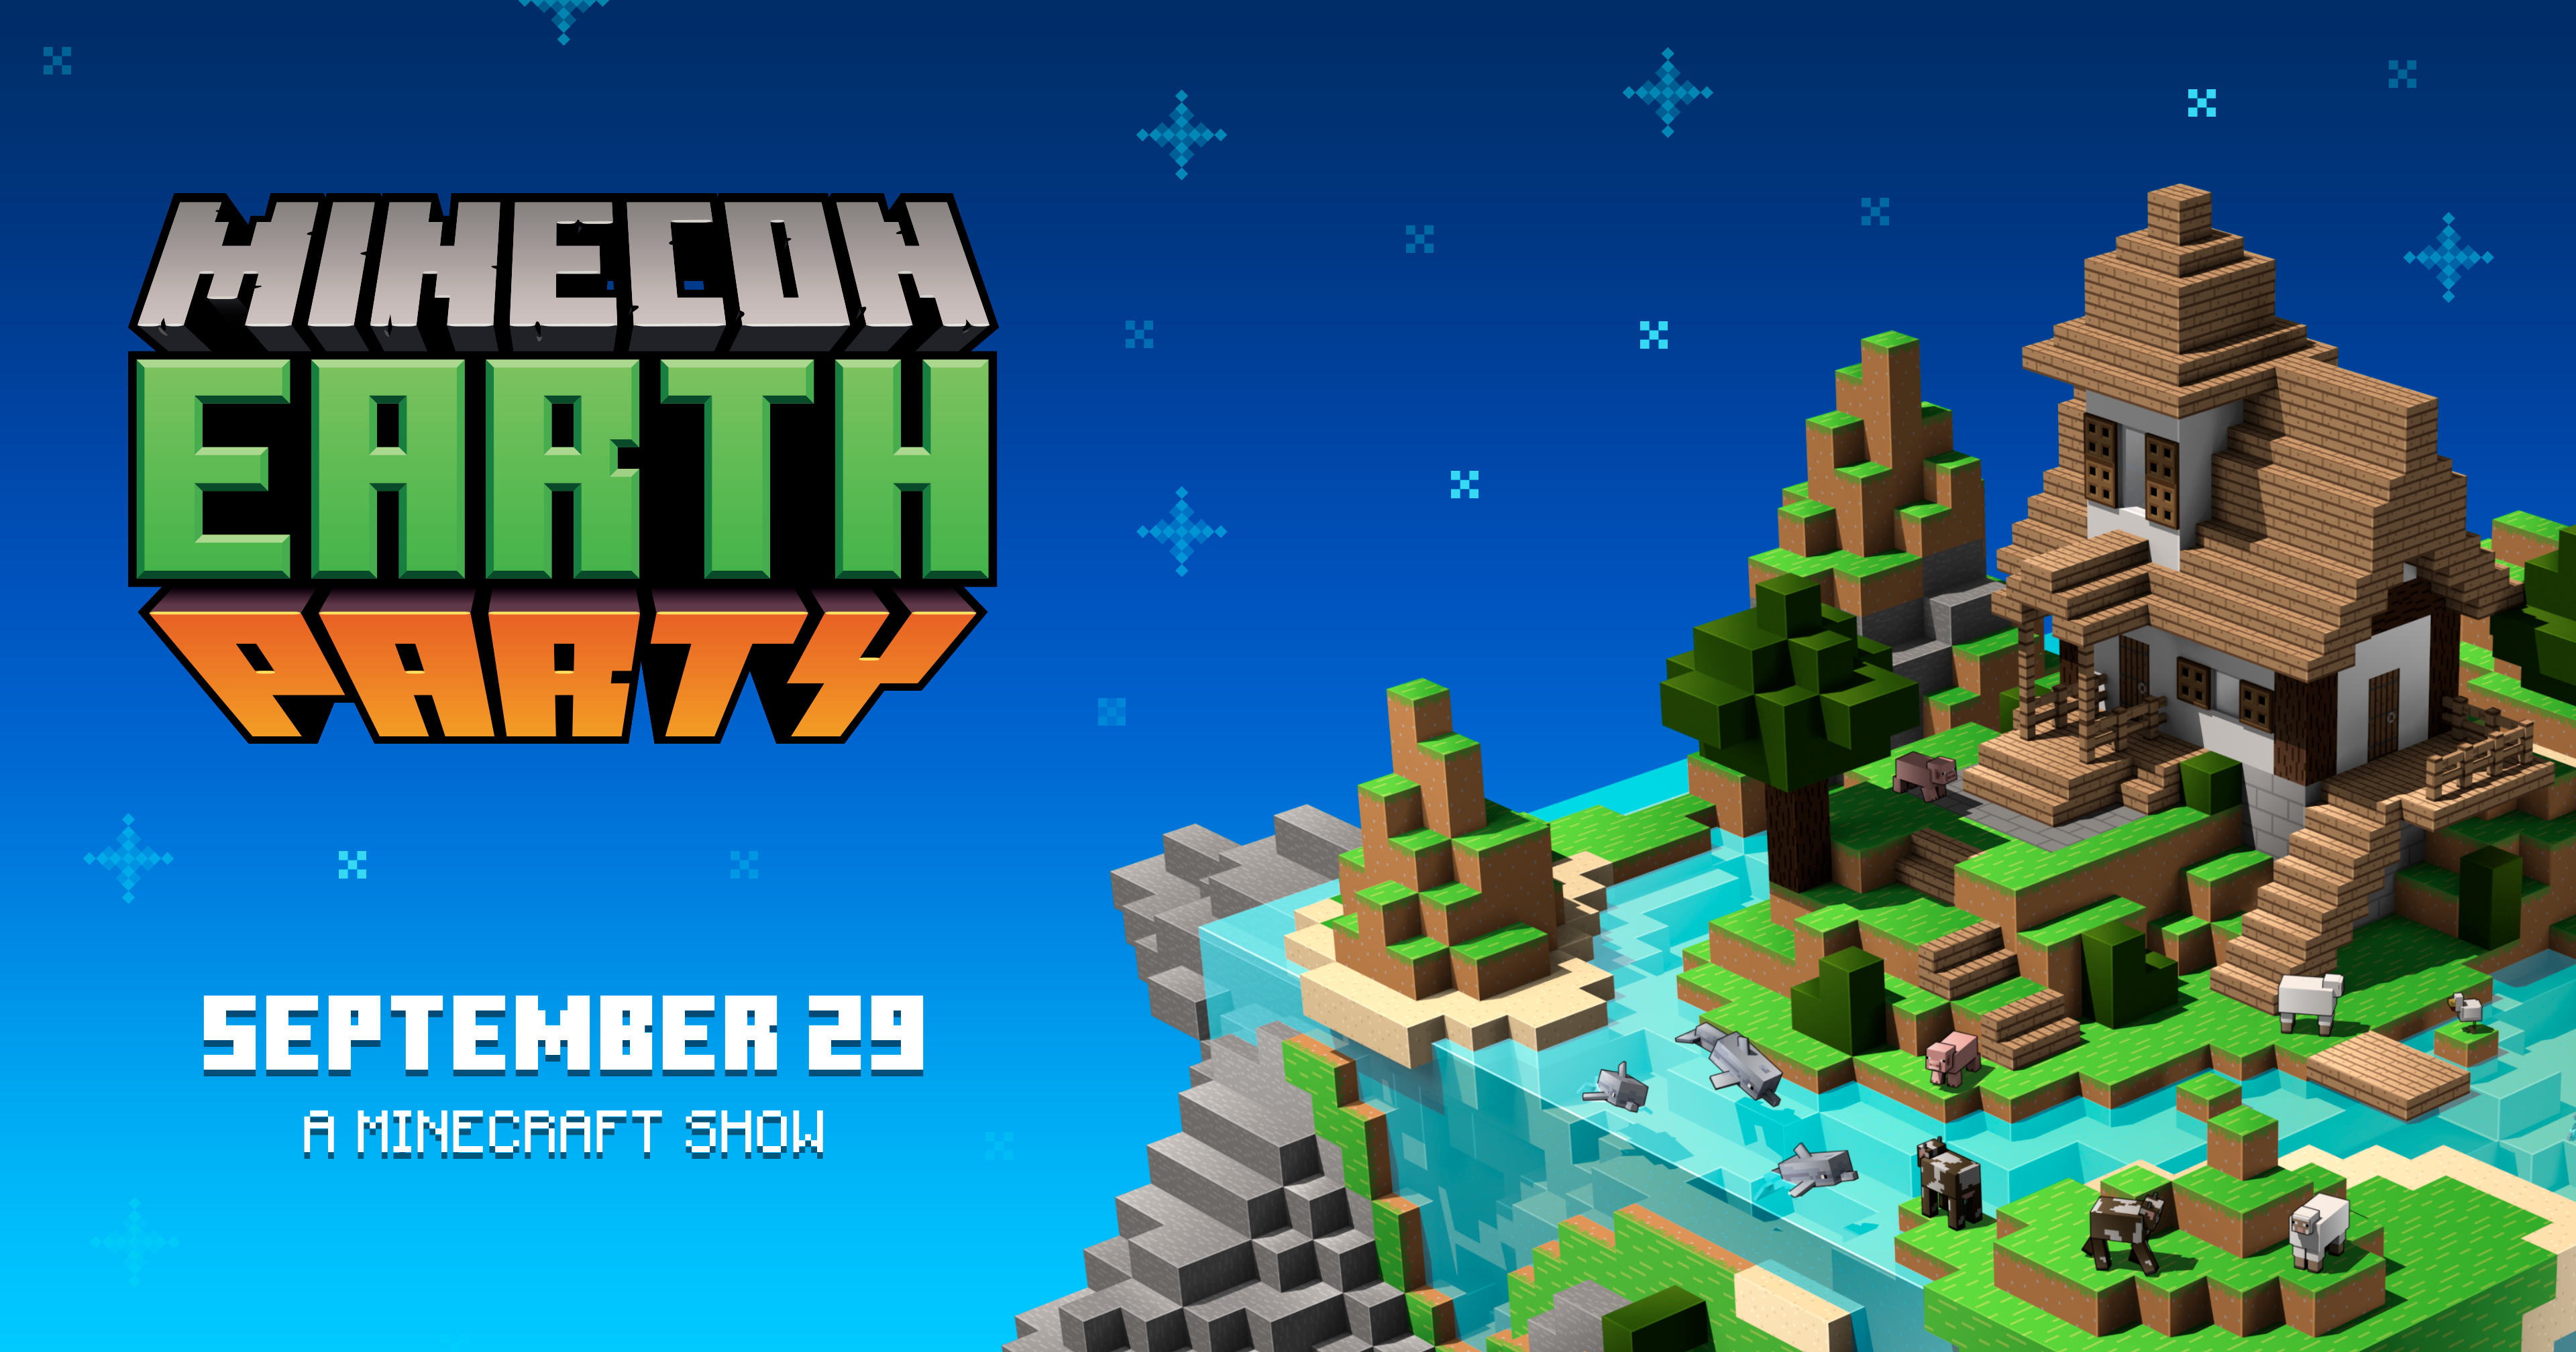 Minecon_earth_party Mopop Png